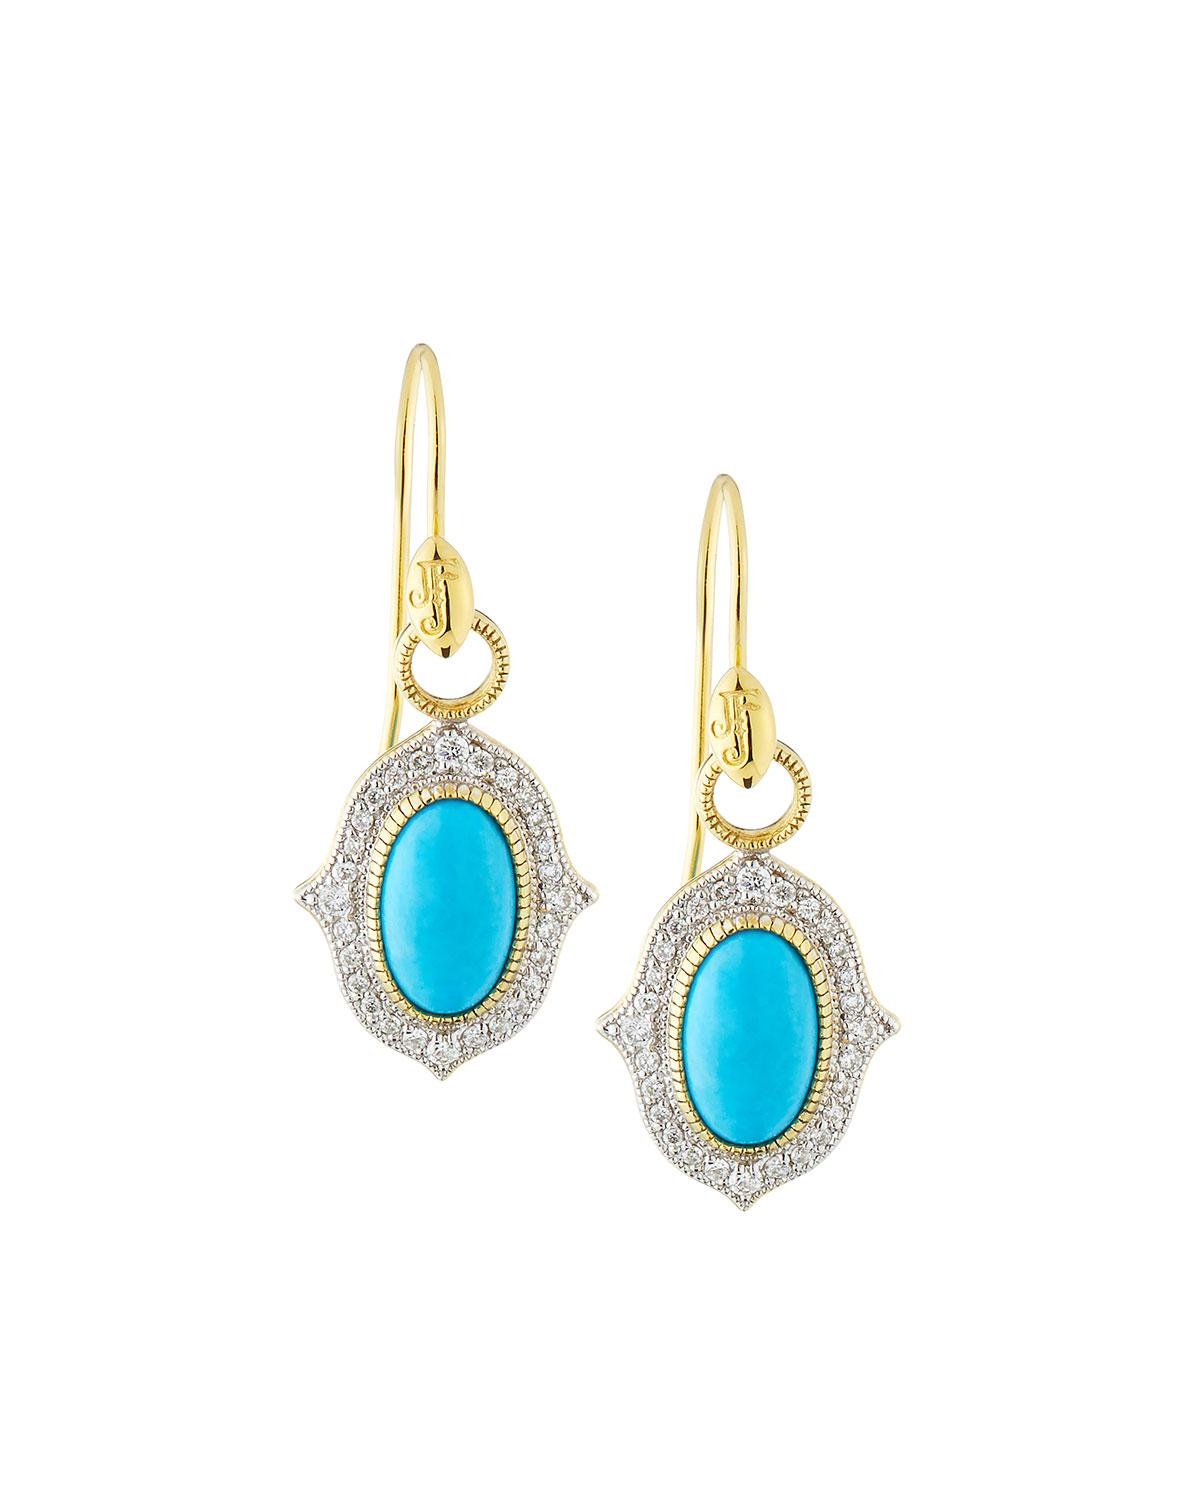 Jude Frances 18K Provence Pavé Diamond & Turquoise Oval Dangle & Drop Earrings MPVUid4Hwl